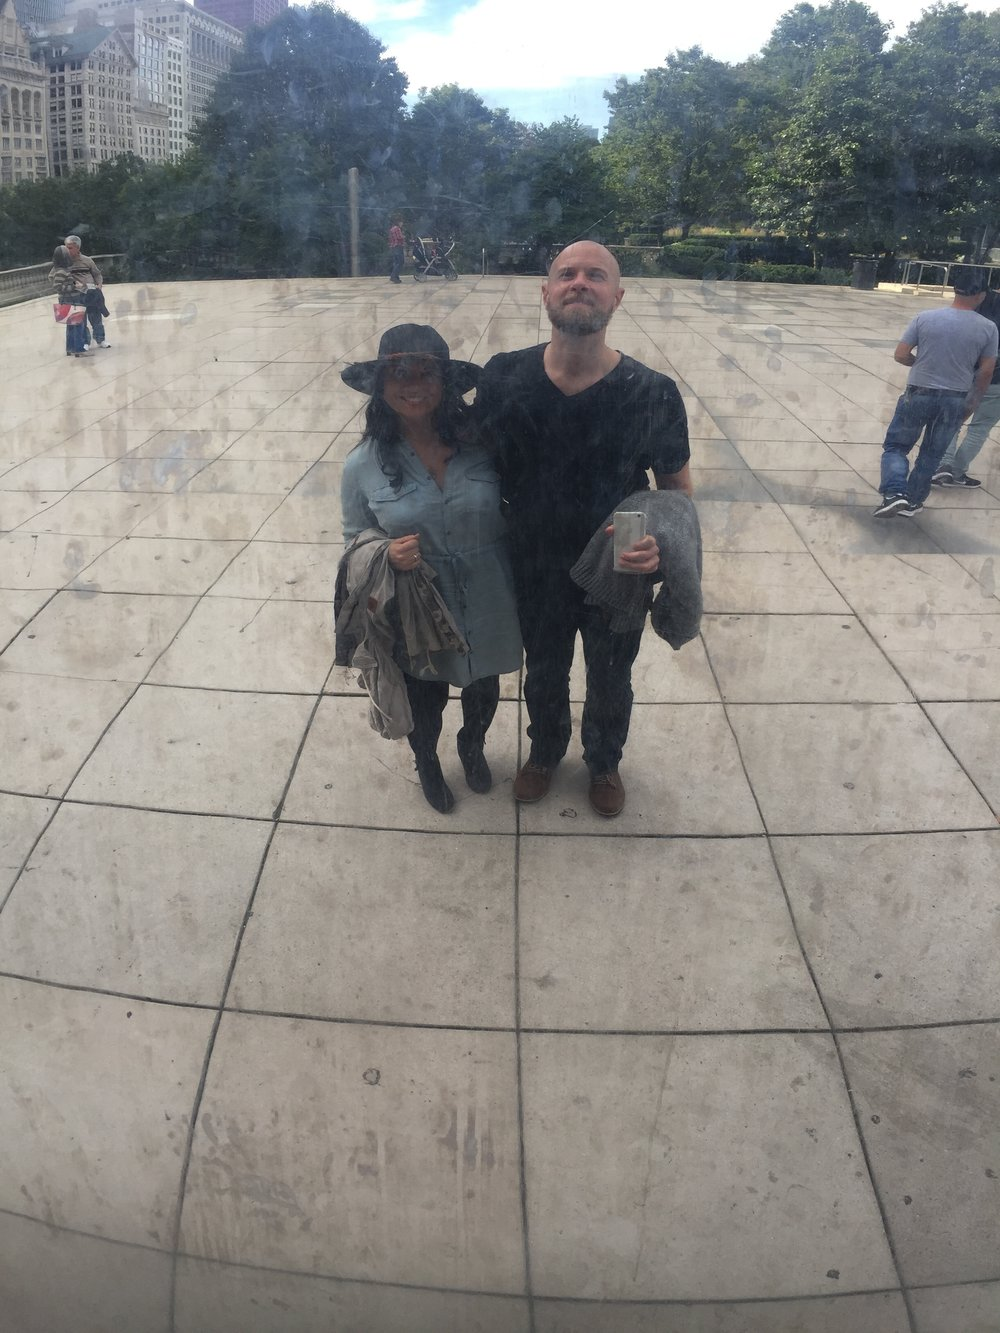 Token selfie at Cloud Gate.